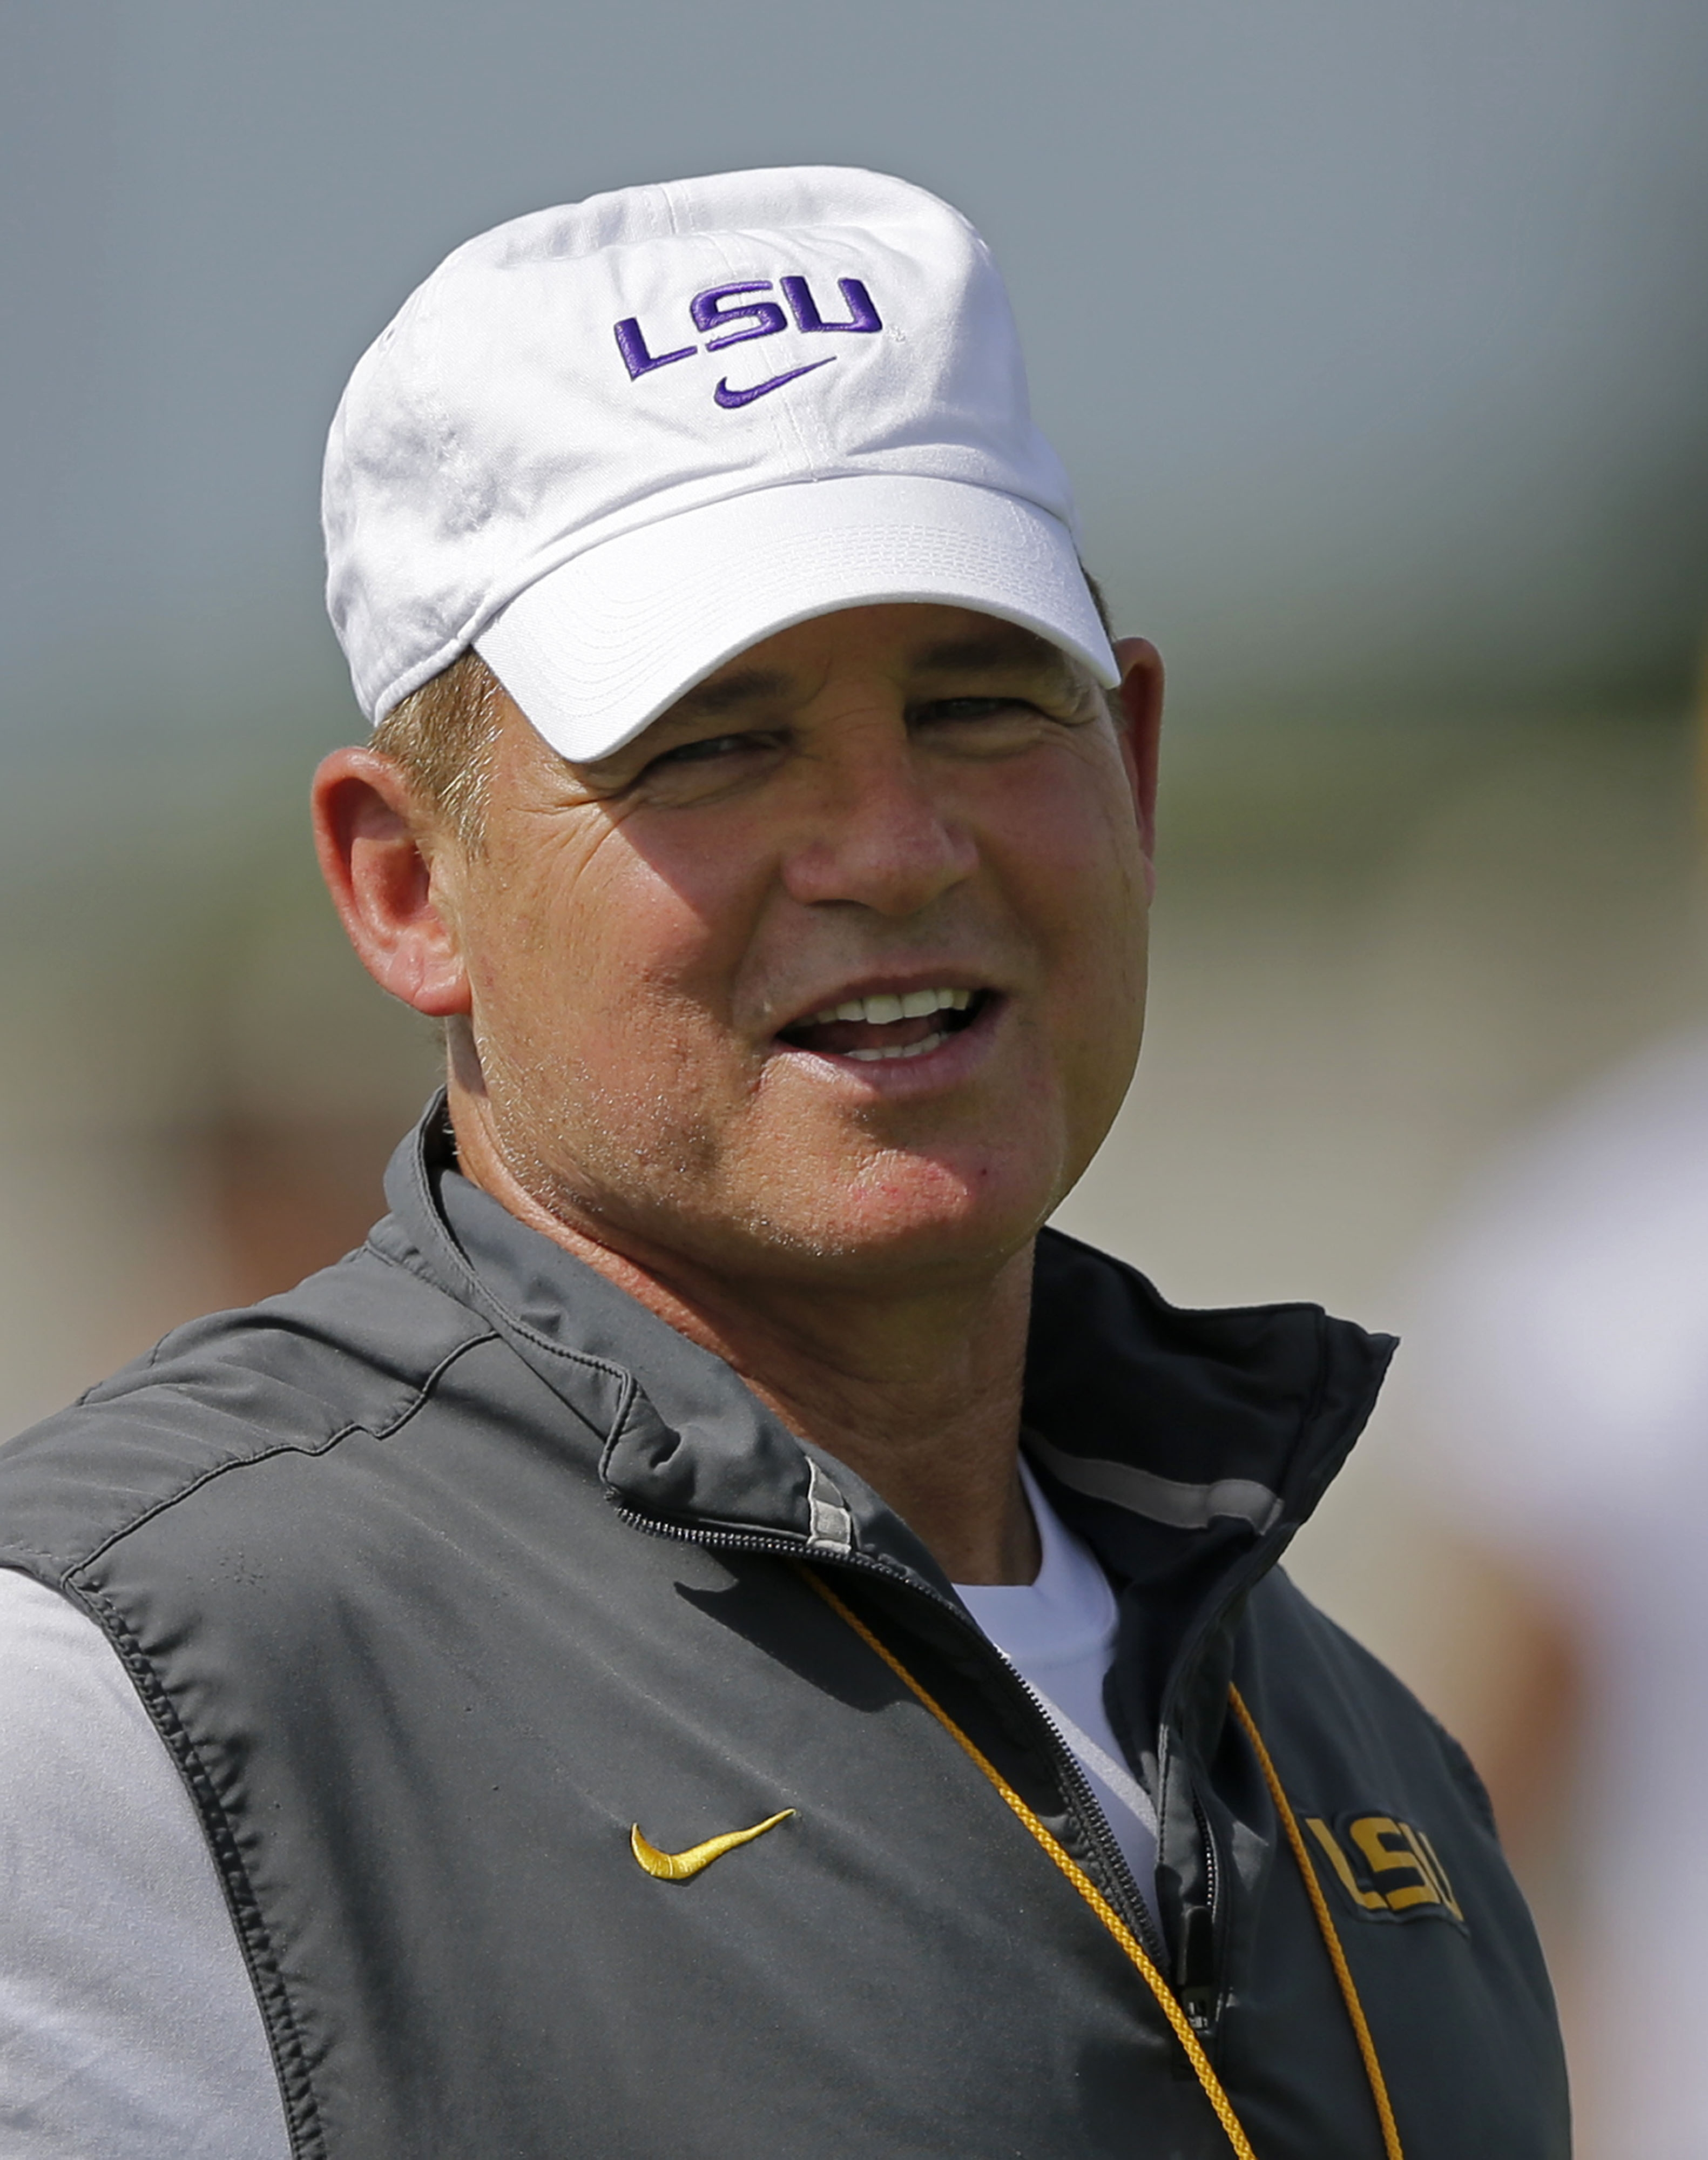 LSU head coach Les Miles watches during their NCAA college football practice in Baton Rouge, La., Friday, Aug. 7, 2015. (AP Photo/Gerald Herbert)